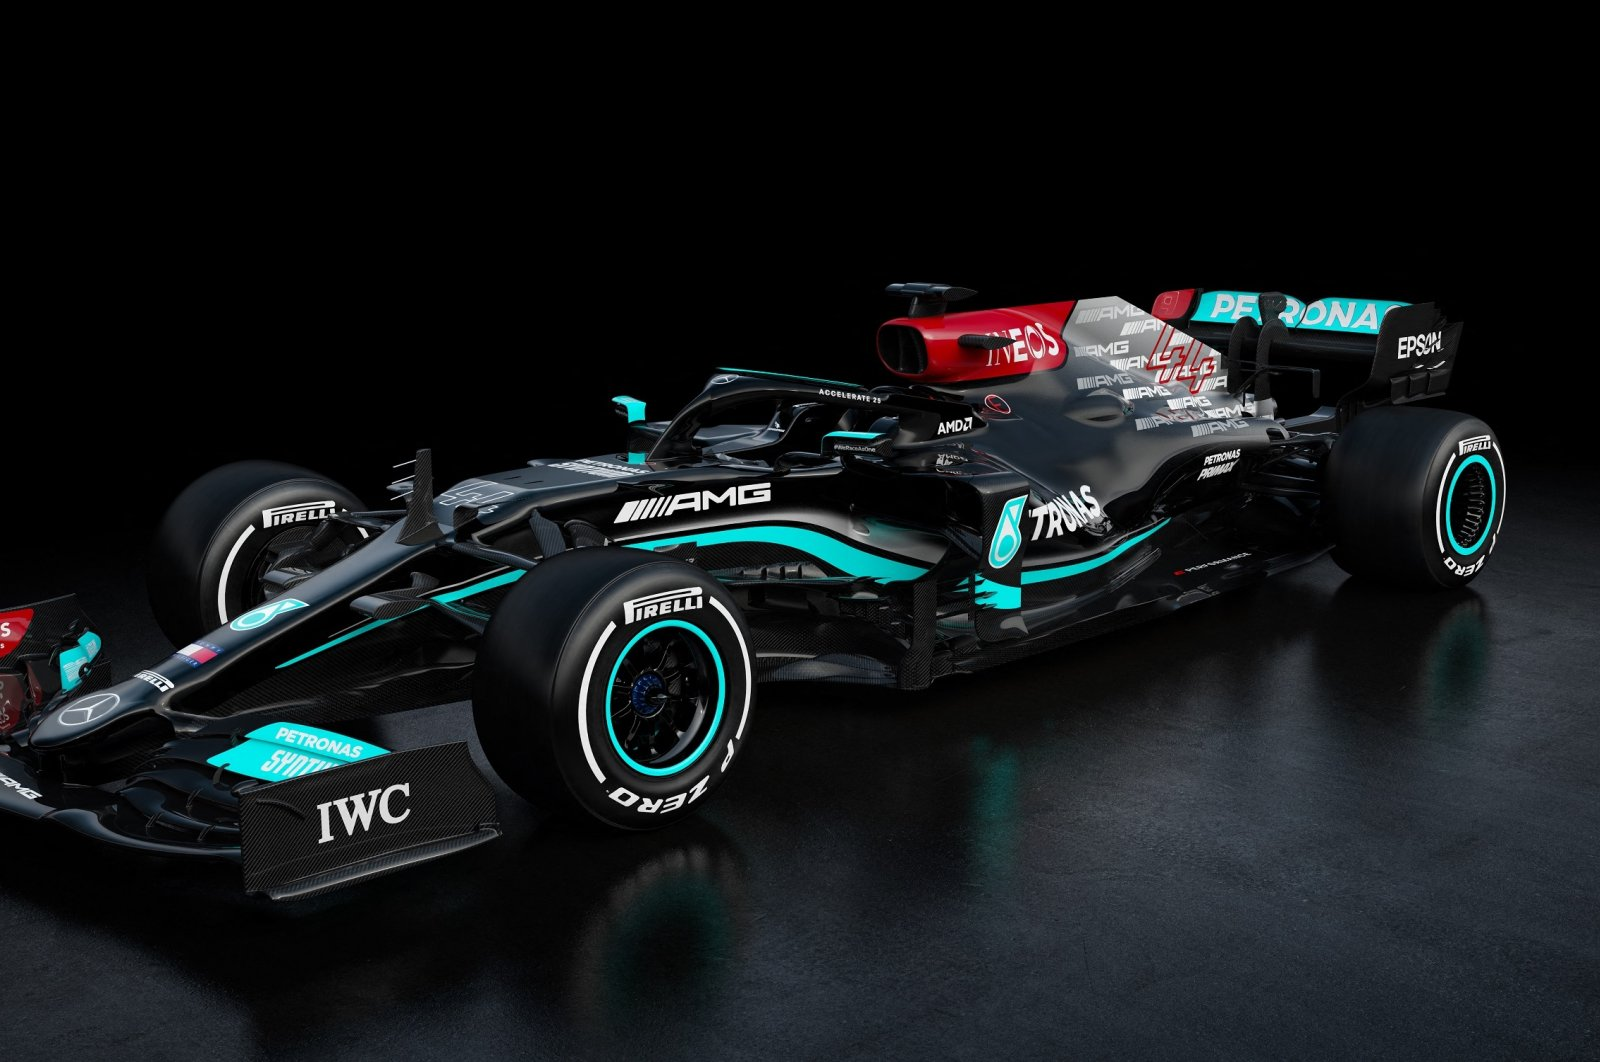 Mercedes unveils its new Formula One car for 2021 | Daily ...